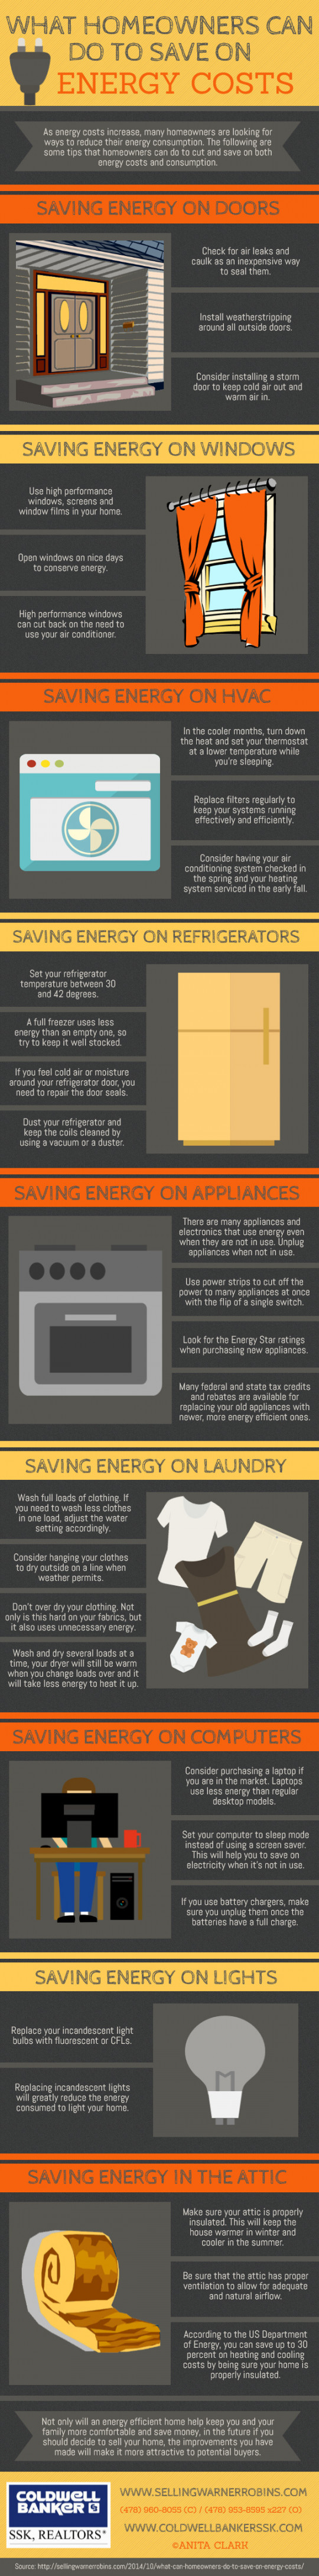 What Homeowners Can Do to Save Money on Energy Costs